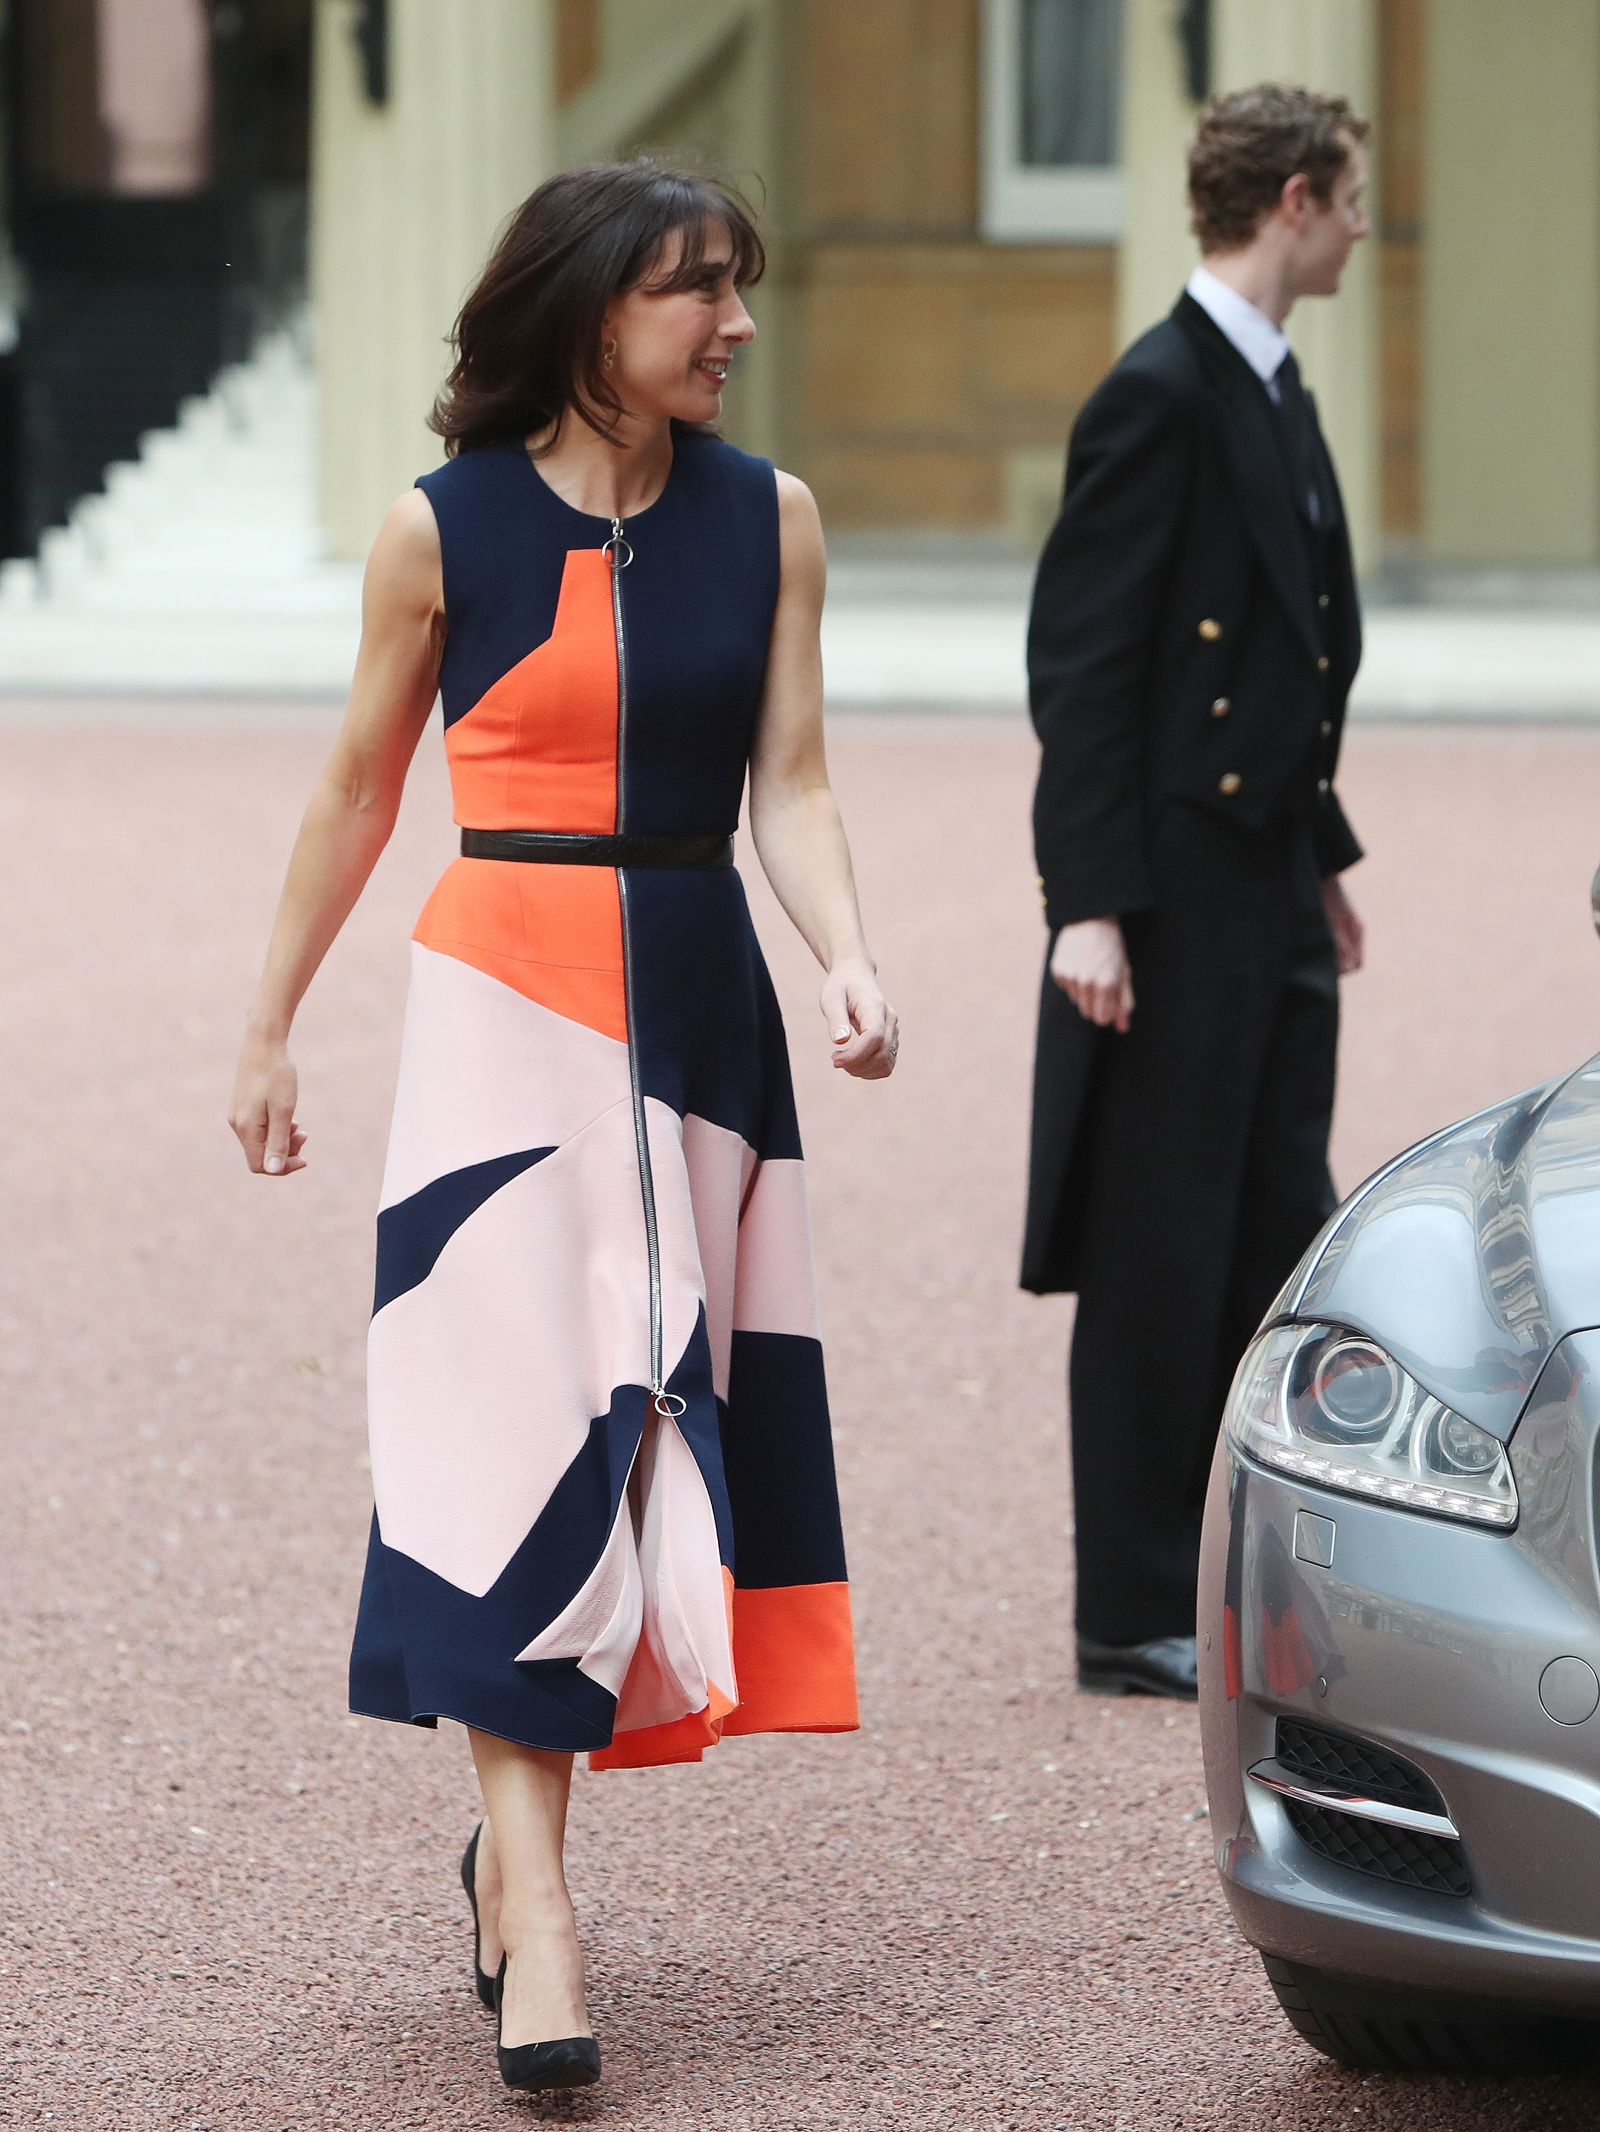 Samantha Cameron leaves Downing Street in Roksanda